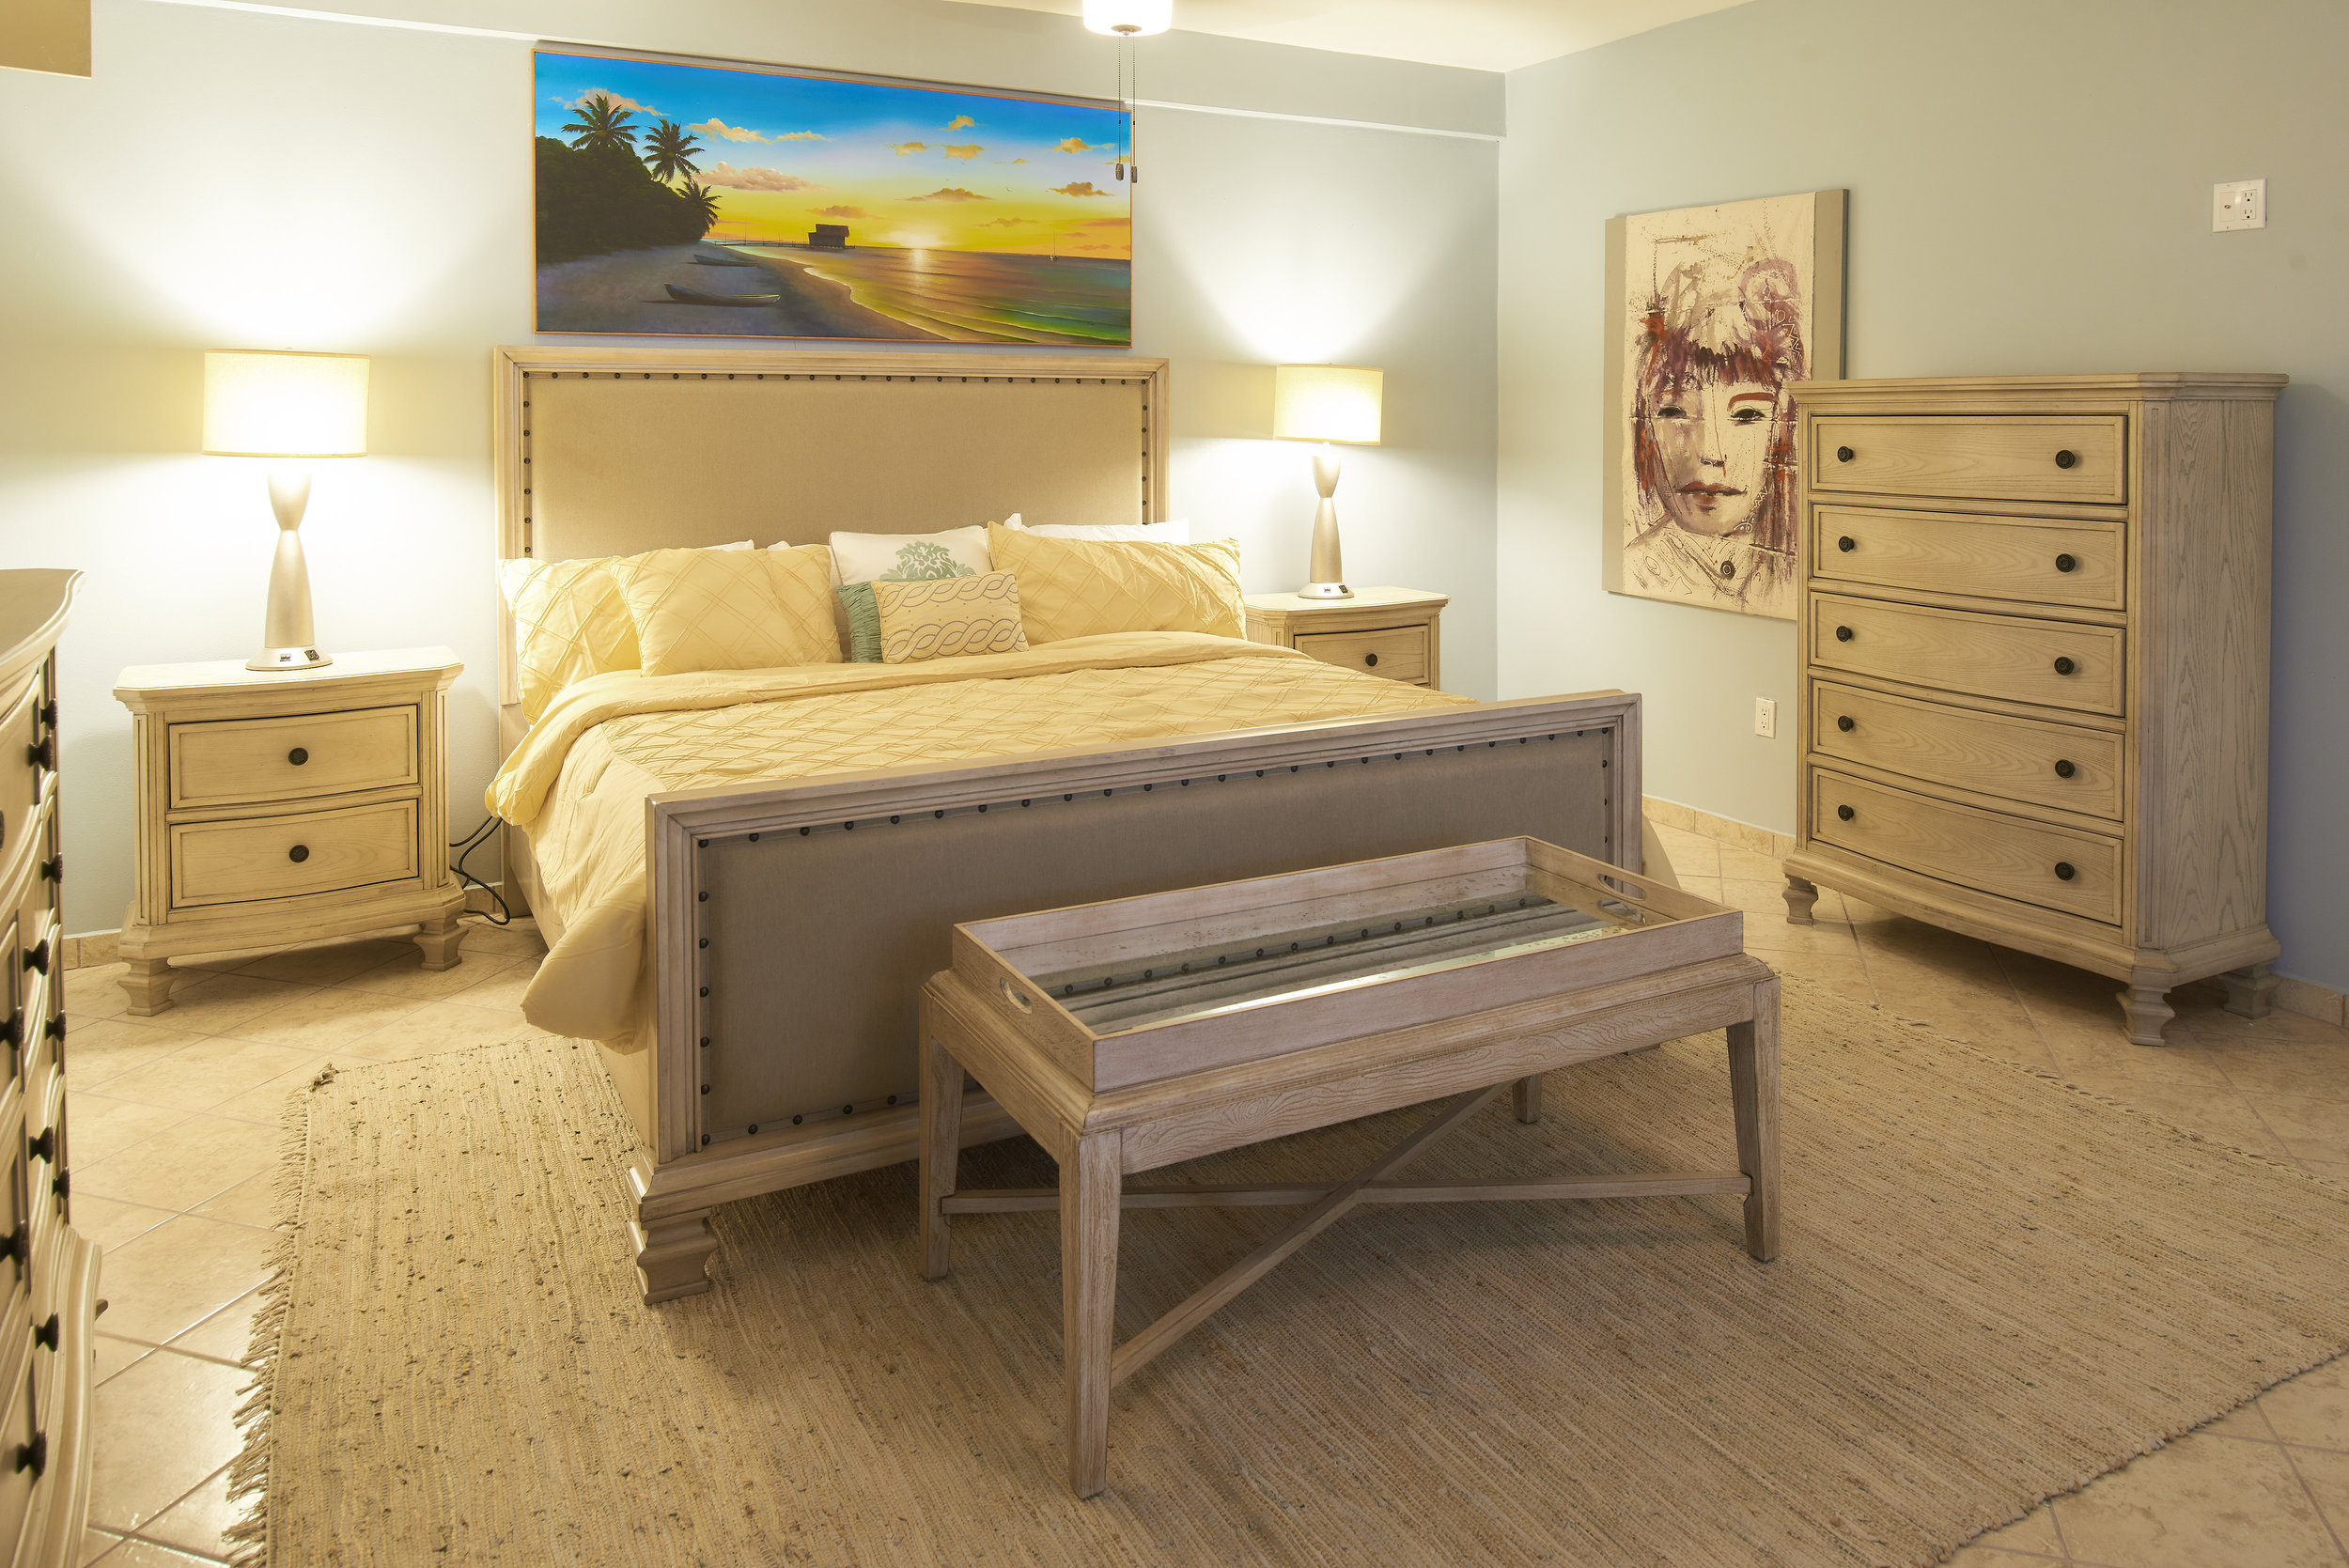 The Pearl -Luxury Room - Spacious and comfortable Pearl is a refuge from everyday cares. King sized bed and luxurious furnishings make this room your perfect home away from home